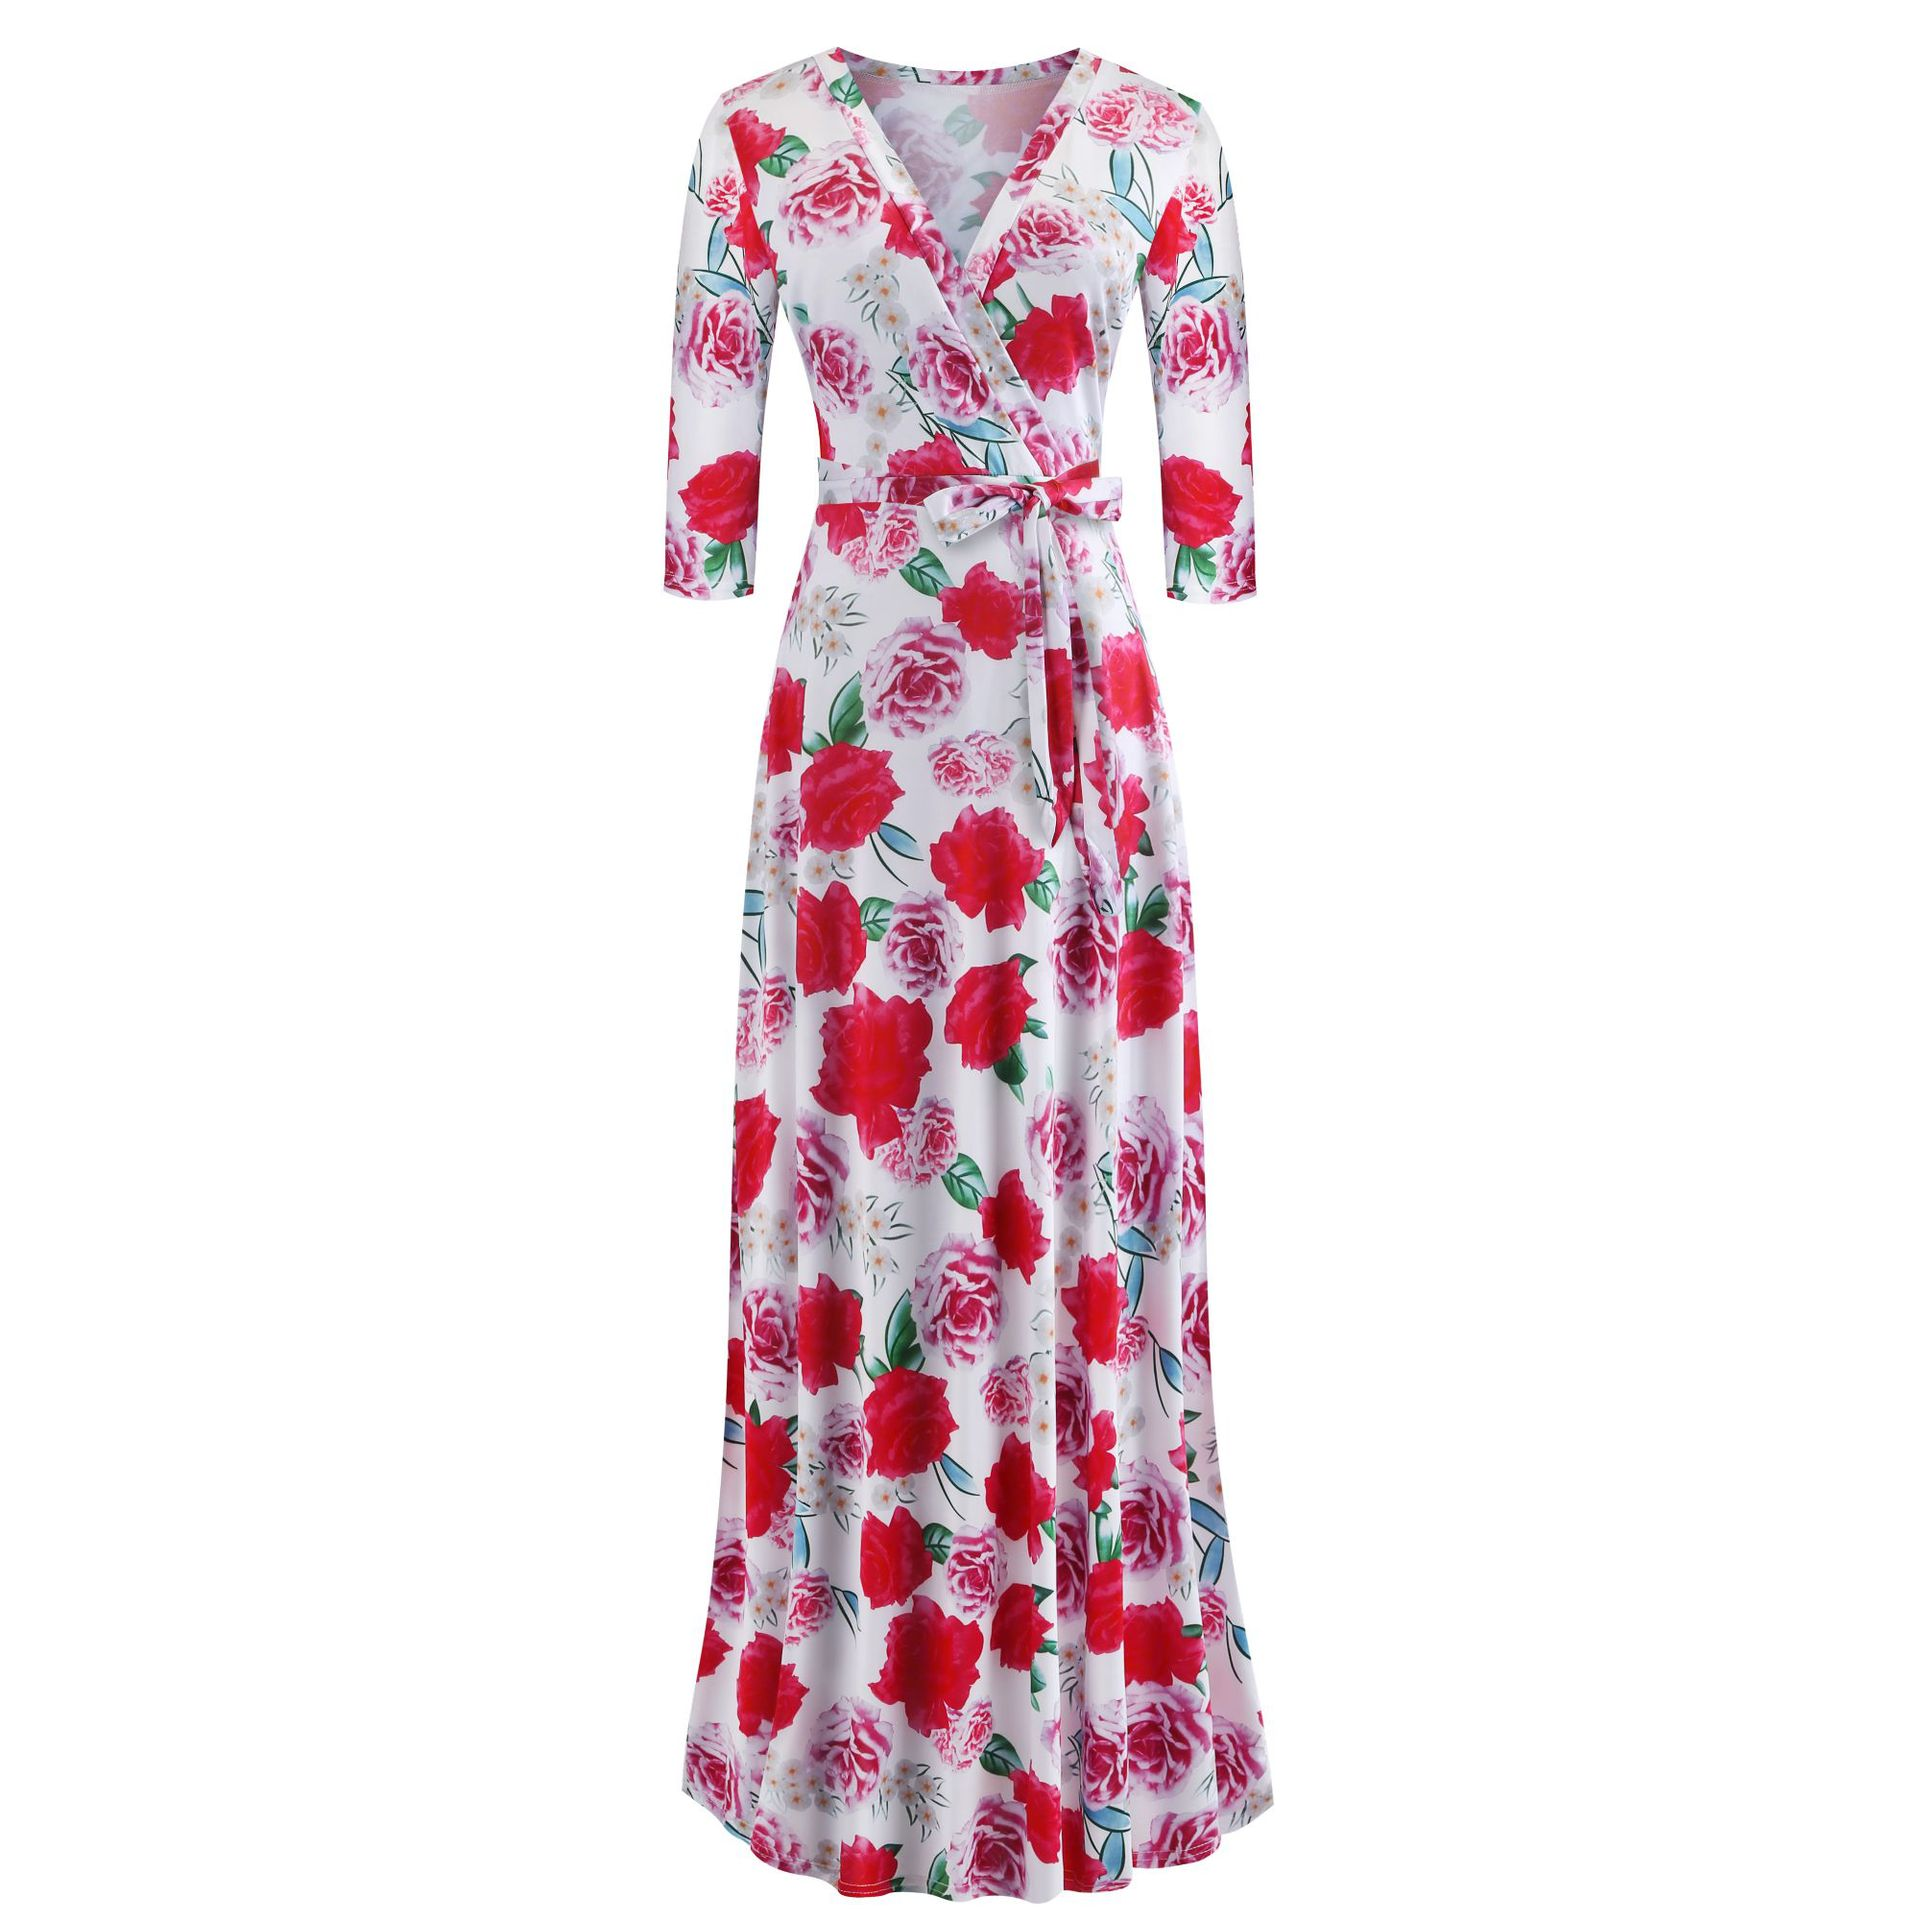 H57e27b3e235d4a4a93efc29433a96473L - Oufisun Spring Sexy Deep V Neck Women's Dress Bohemia Tunic Maxi Dresses Elegant Vintage Flowers Print Dress Vestidos Plus Size